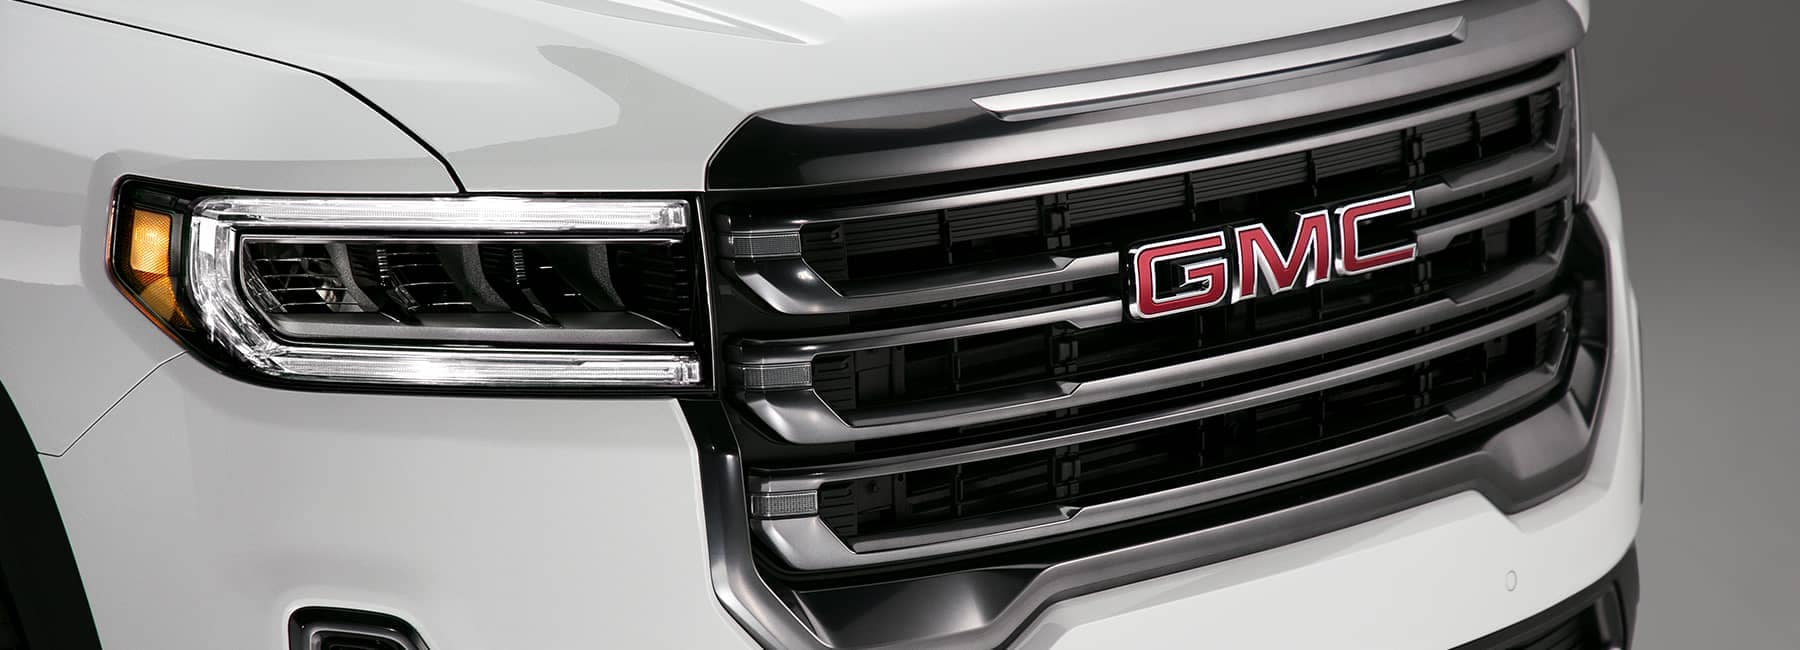 White 2020 GMC Acadia Front Grille_mobile